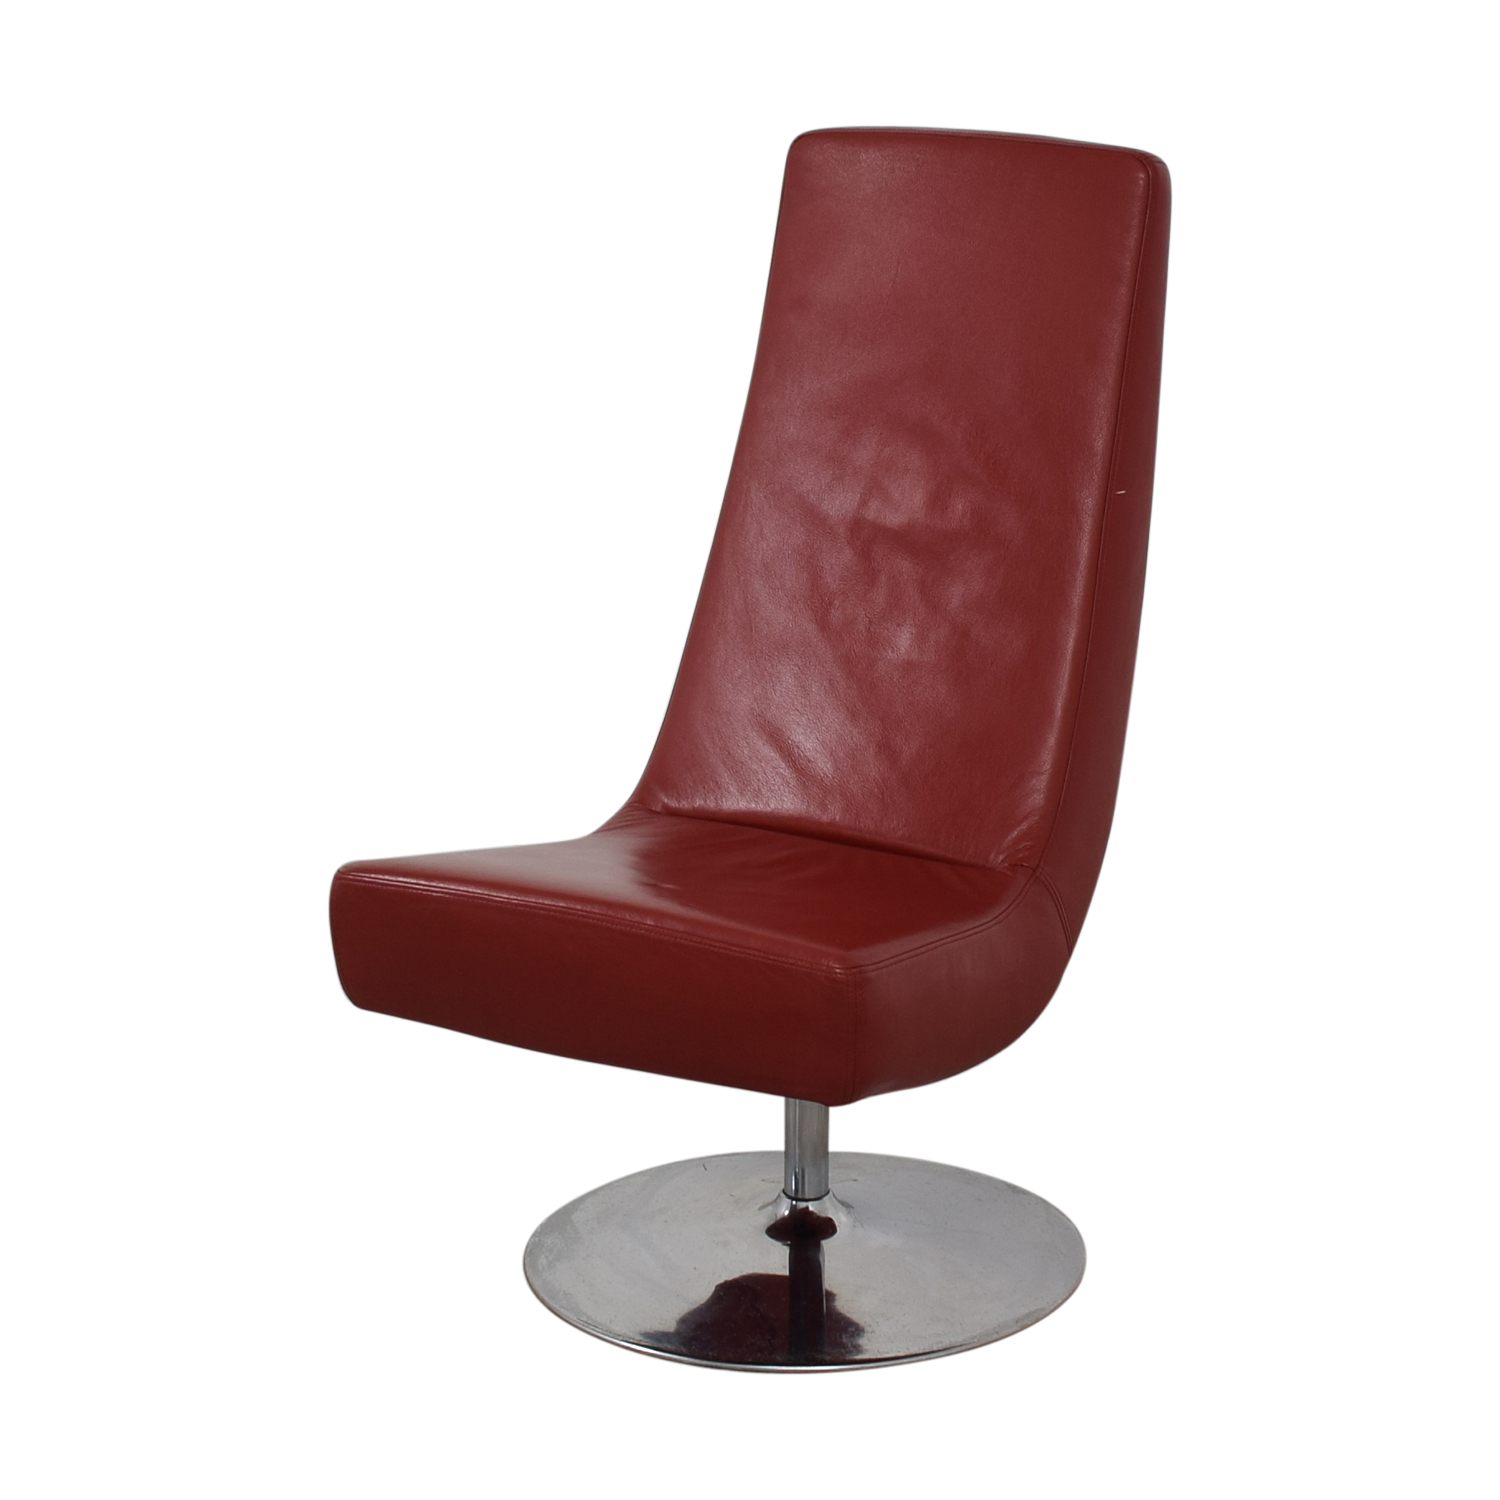 BoConcept BoConcept Aero Style Red Office Swivel Chair dimensions